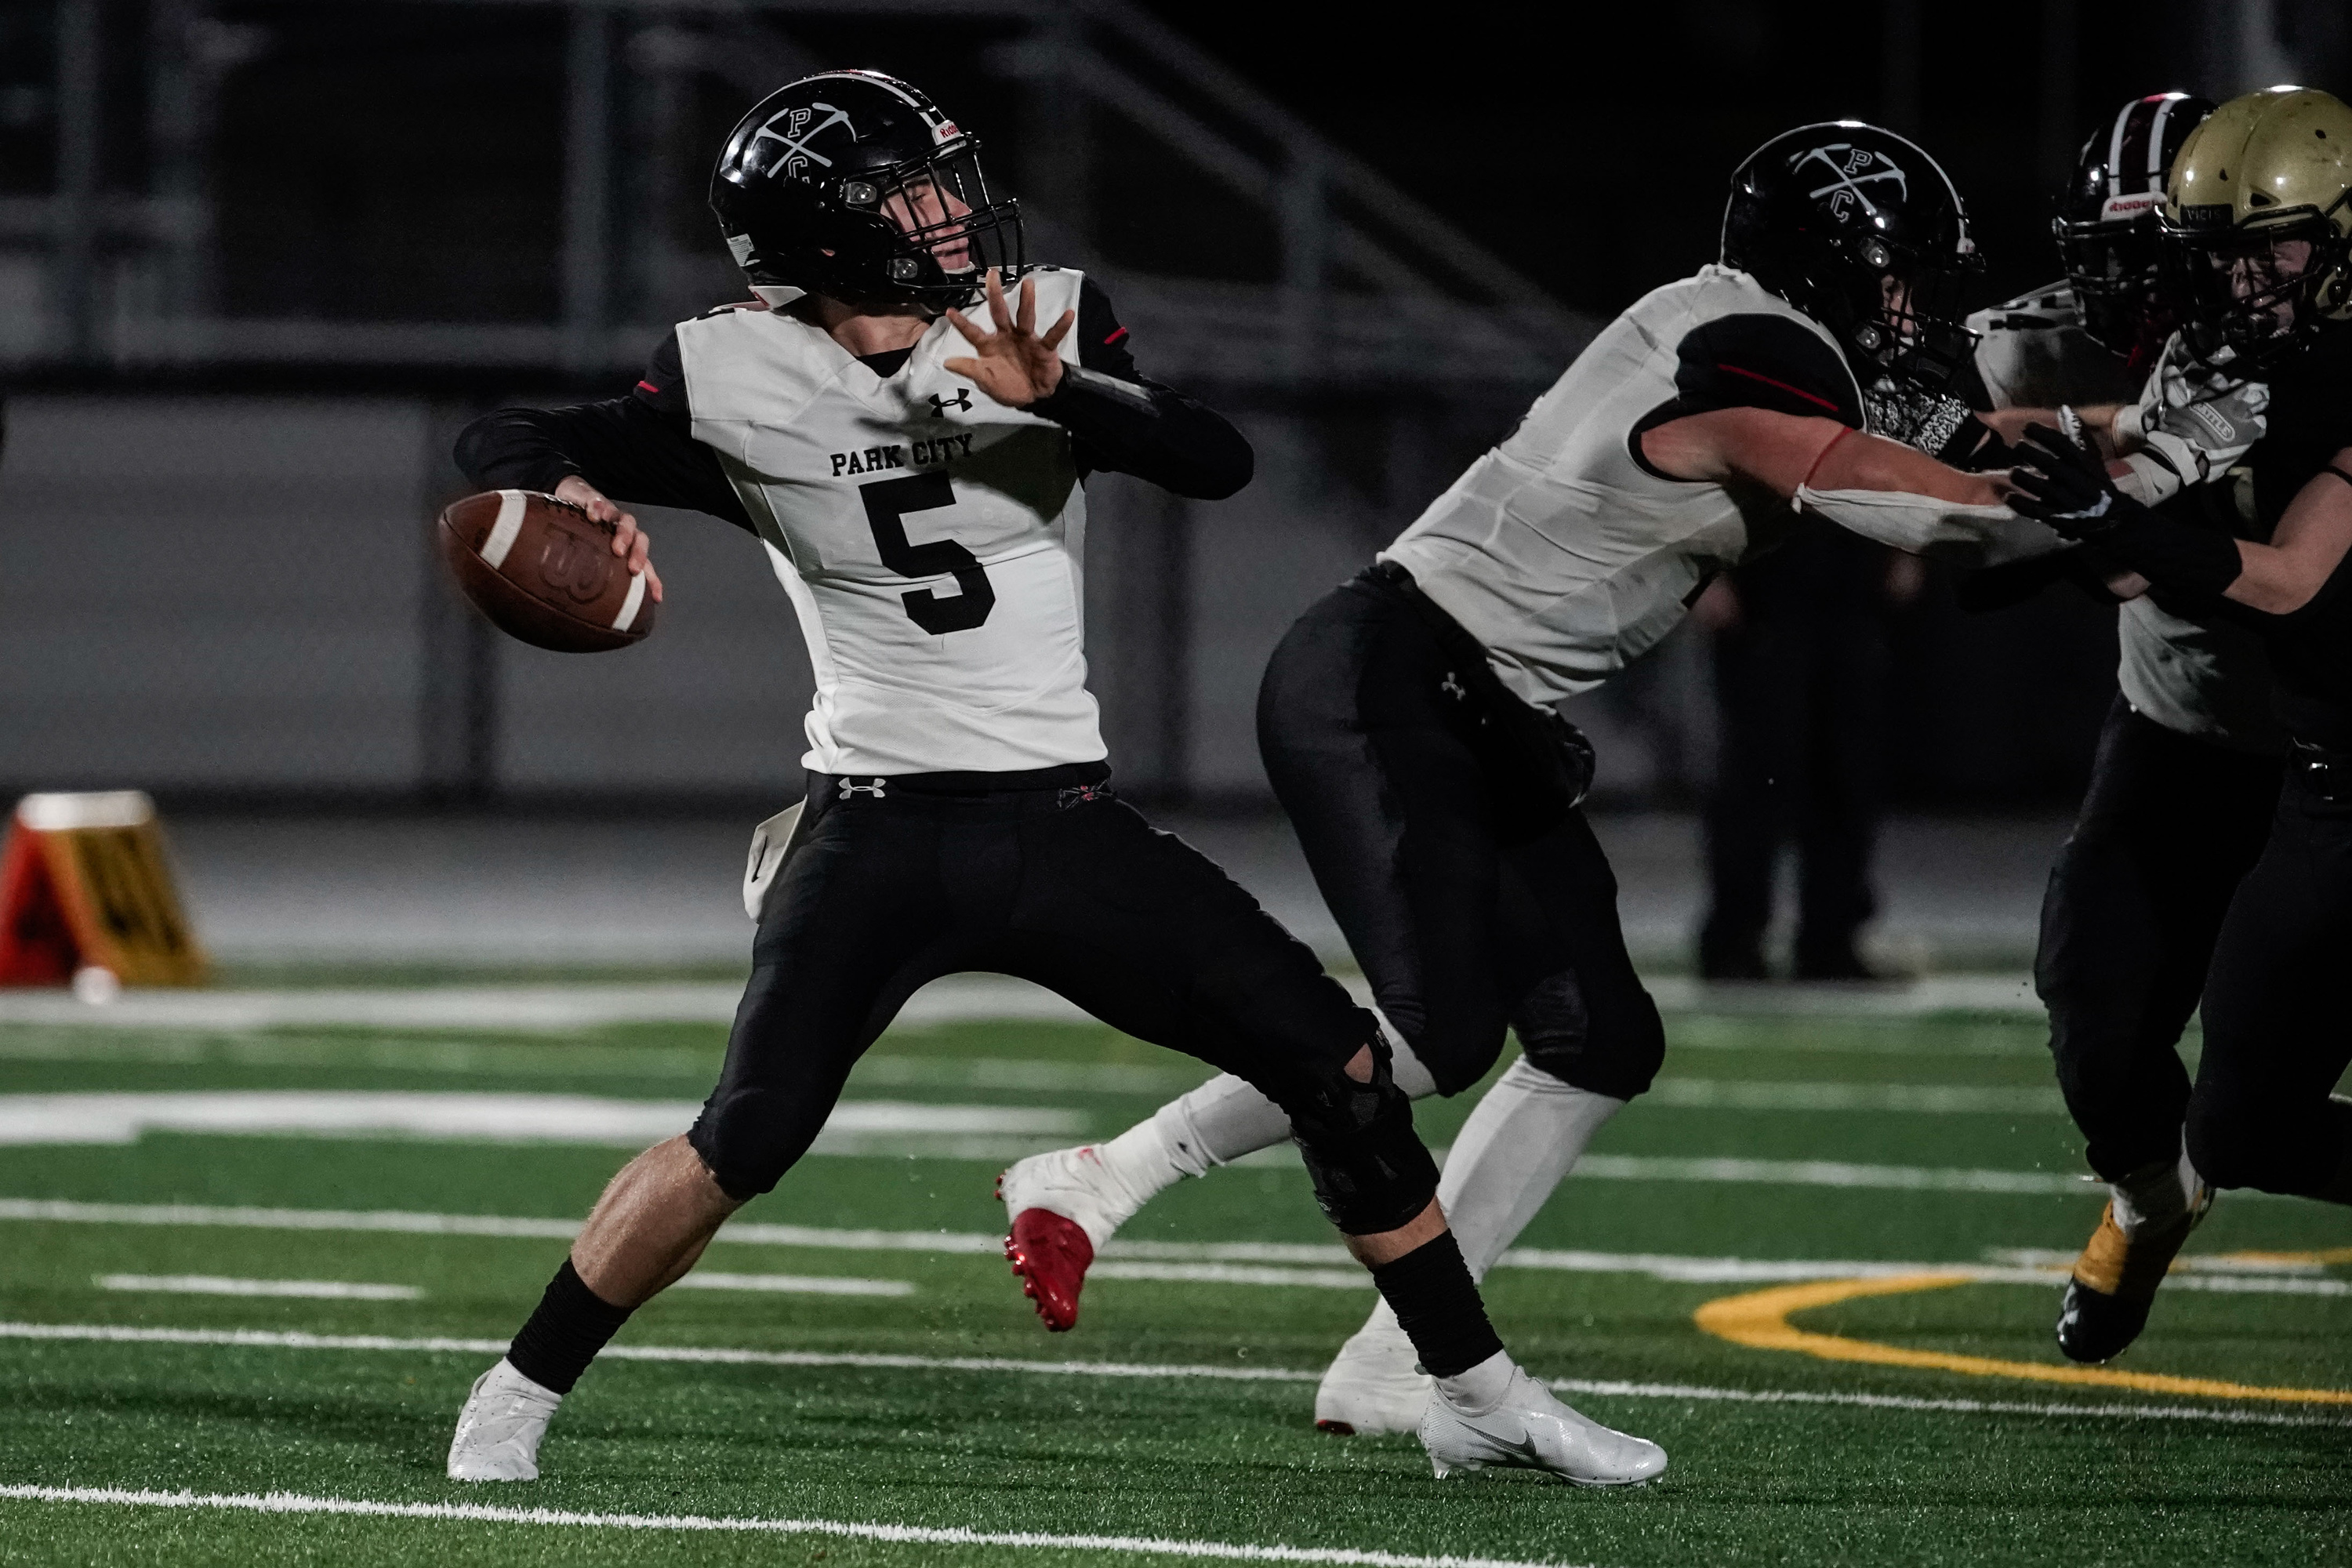 Park City's quarterback Chase Beyer looks to throw the ball as during a high school football game against Skylineat Skyline High School in Salt Lake City on Friday, Oct. 8, 2021. Skyline won 10-6.